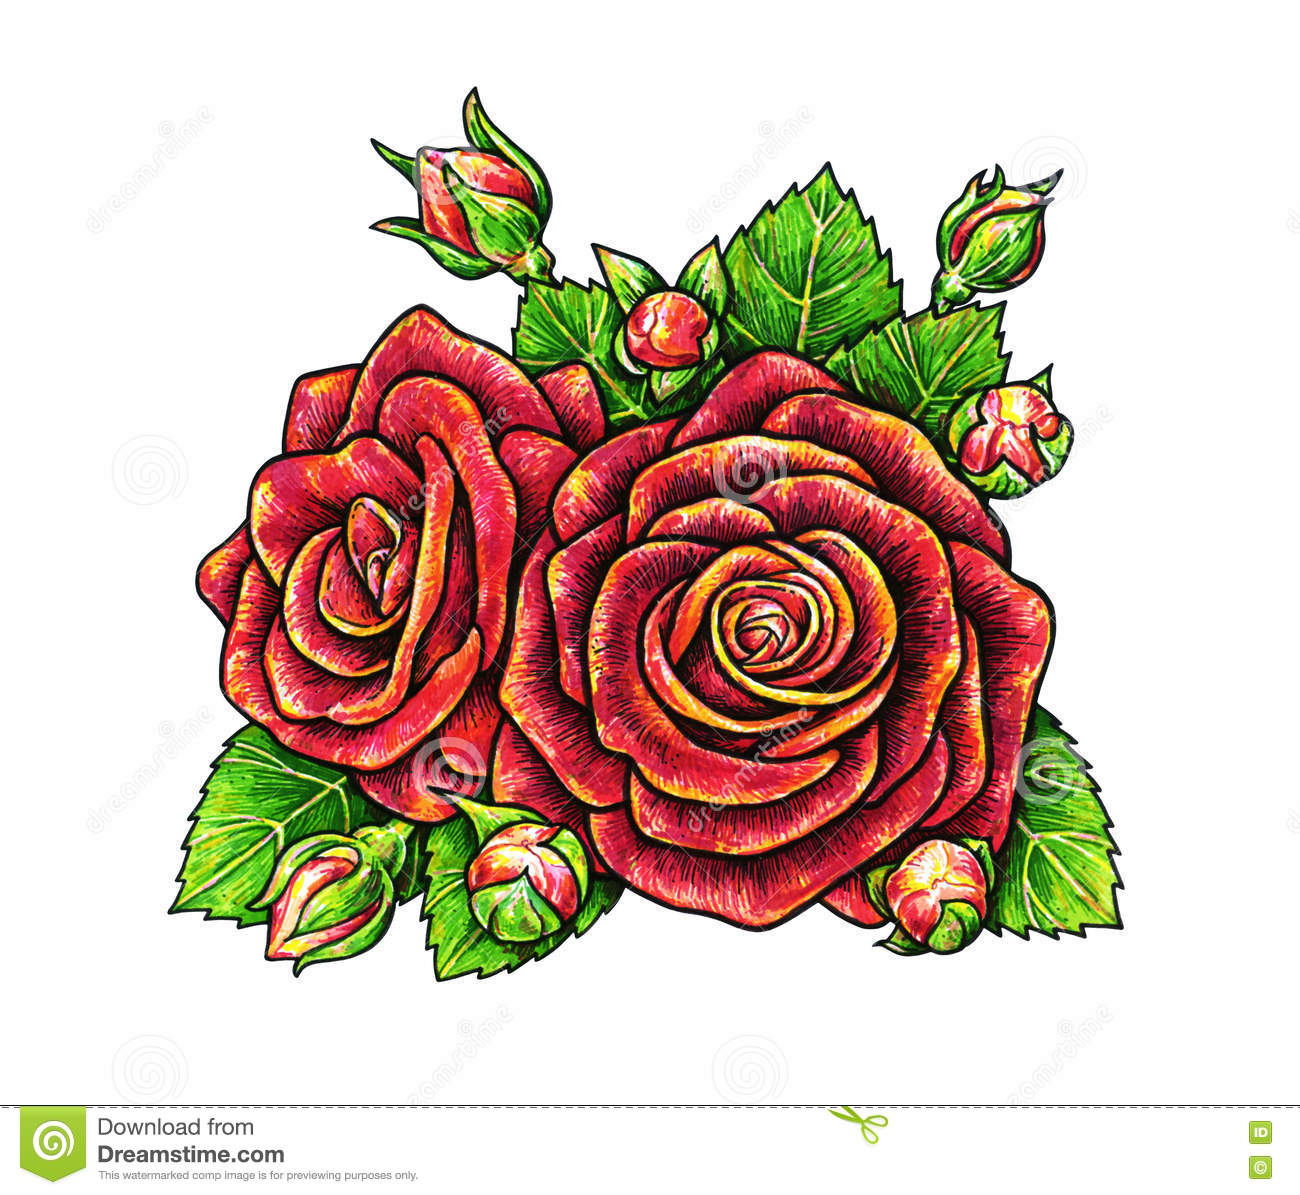 Rose Image Drawing at GetDrawings.com | Free for personal use Rose ...